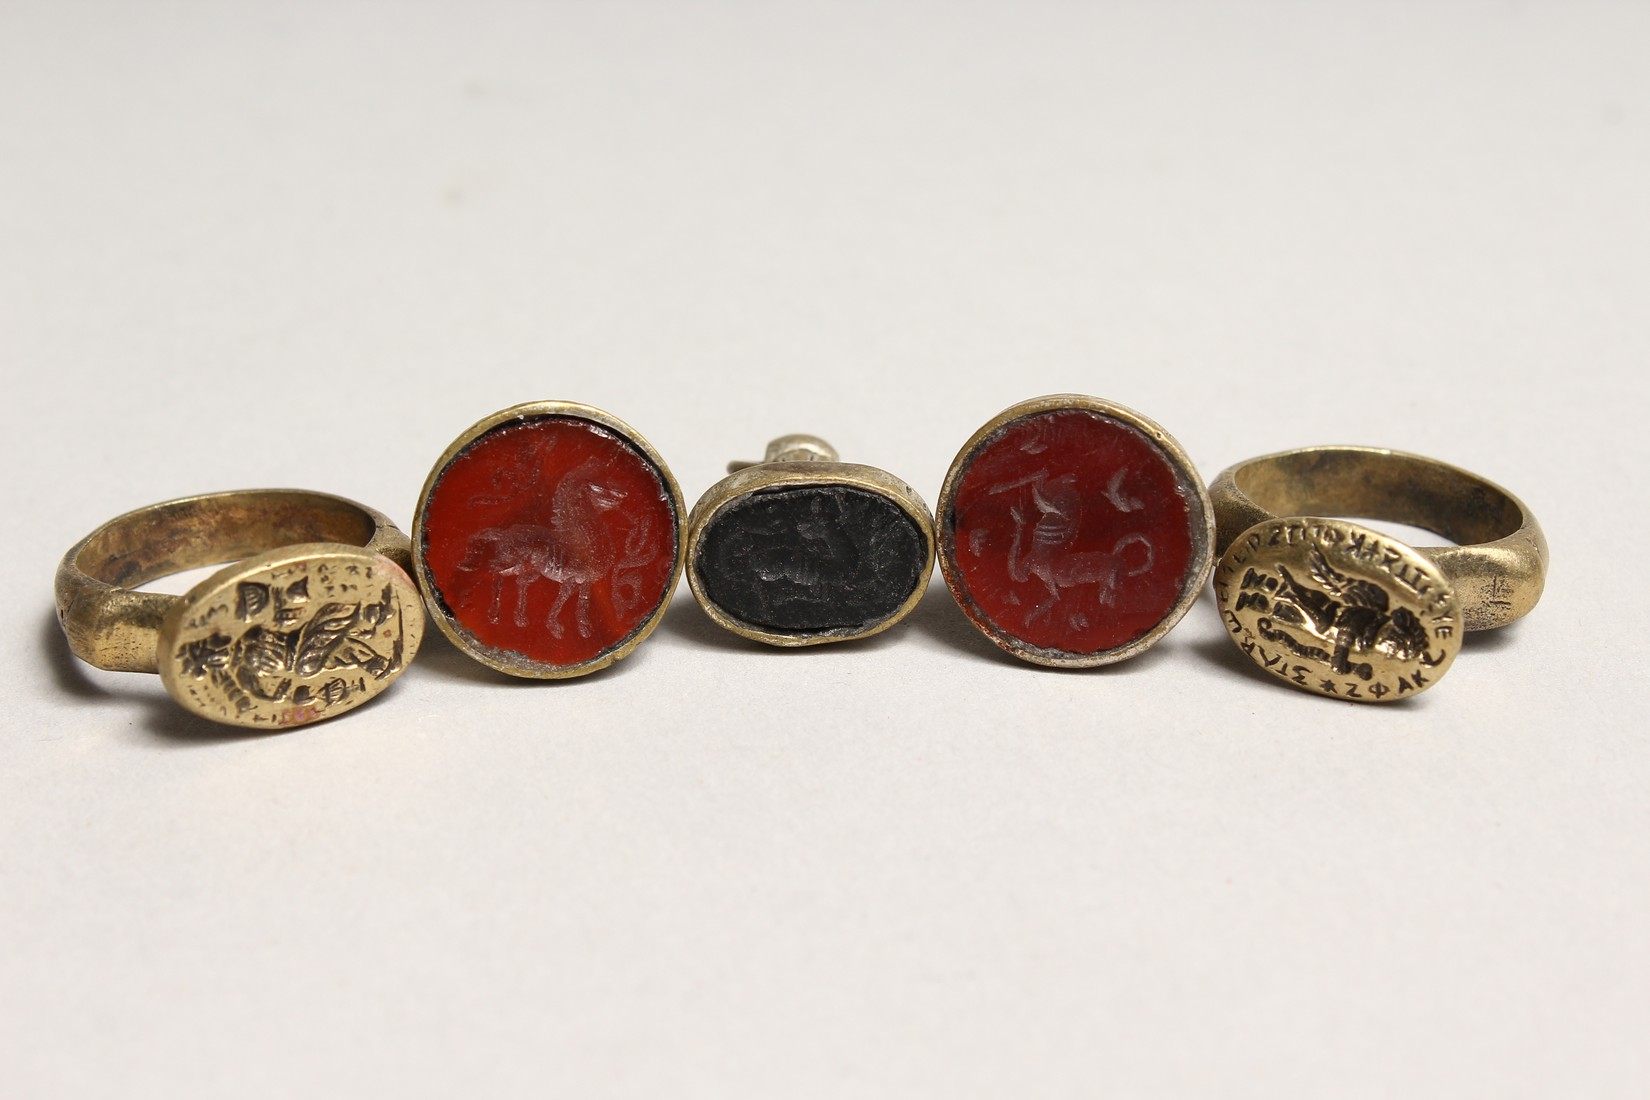 TWO SMALL RINGS AND THREE SEALS (5). - Image 3 of 5